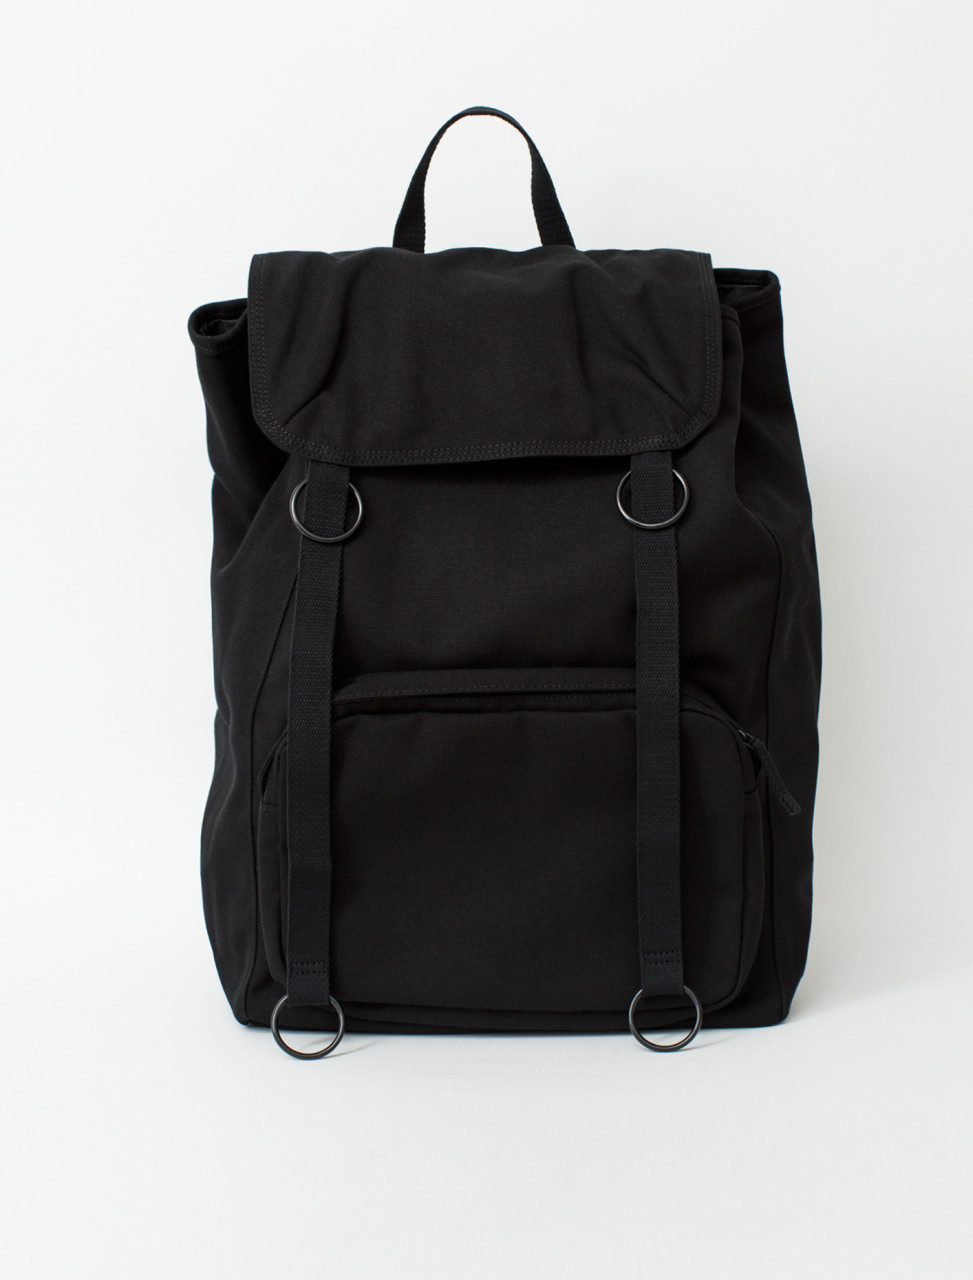 Loop Topload Backpack